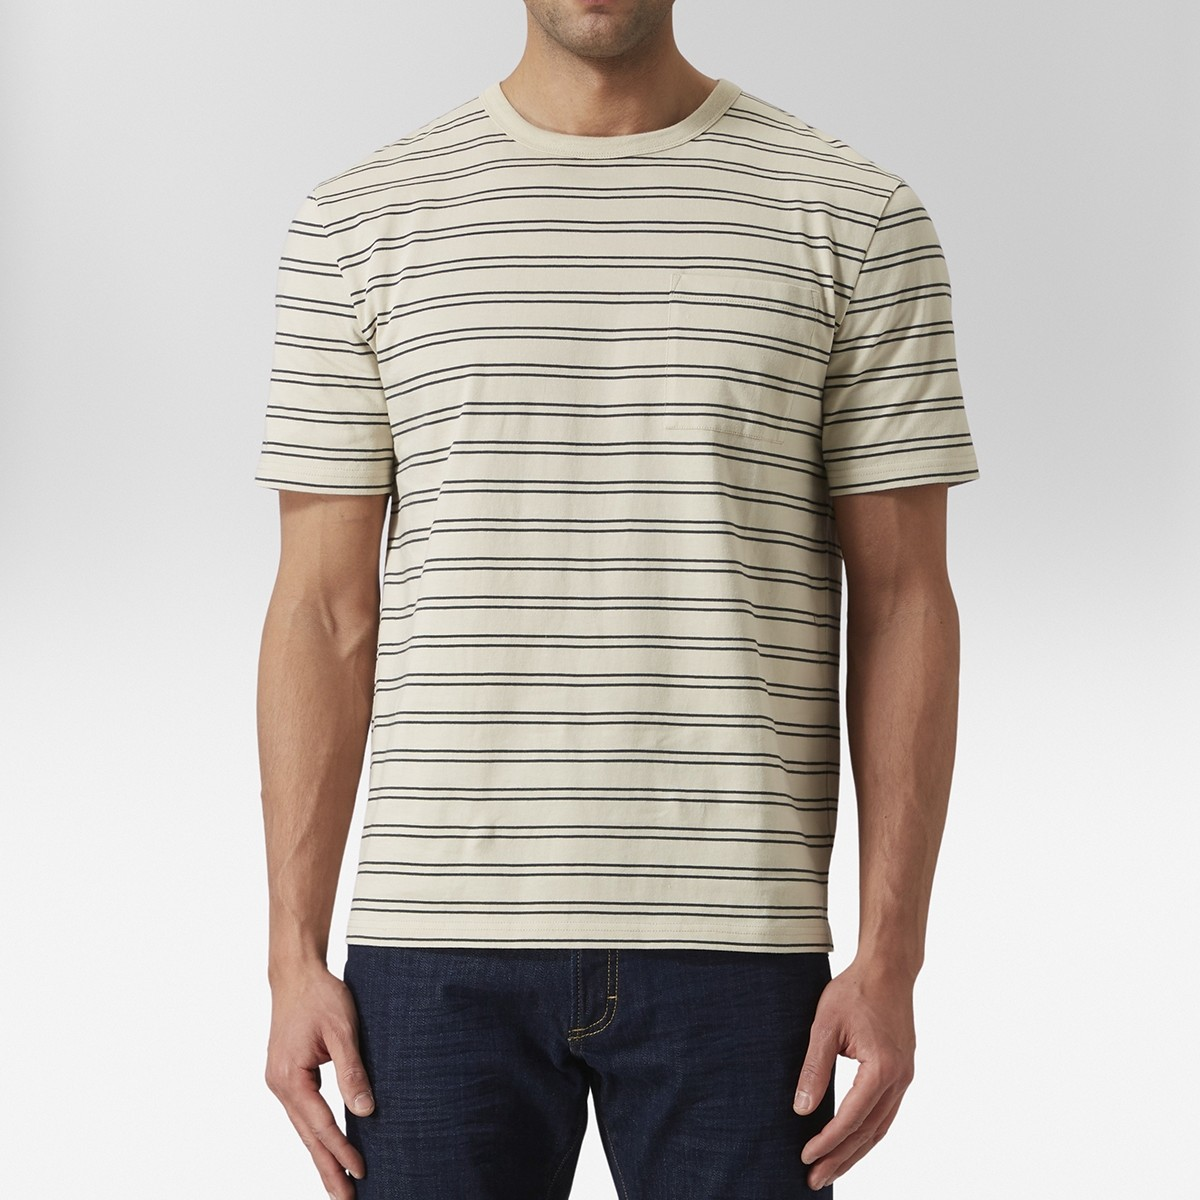 Idris T-shirt Oversize Beige | East West | Brothers.se